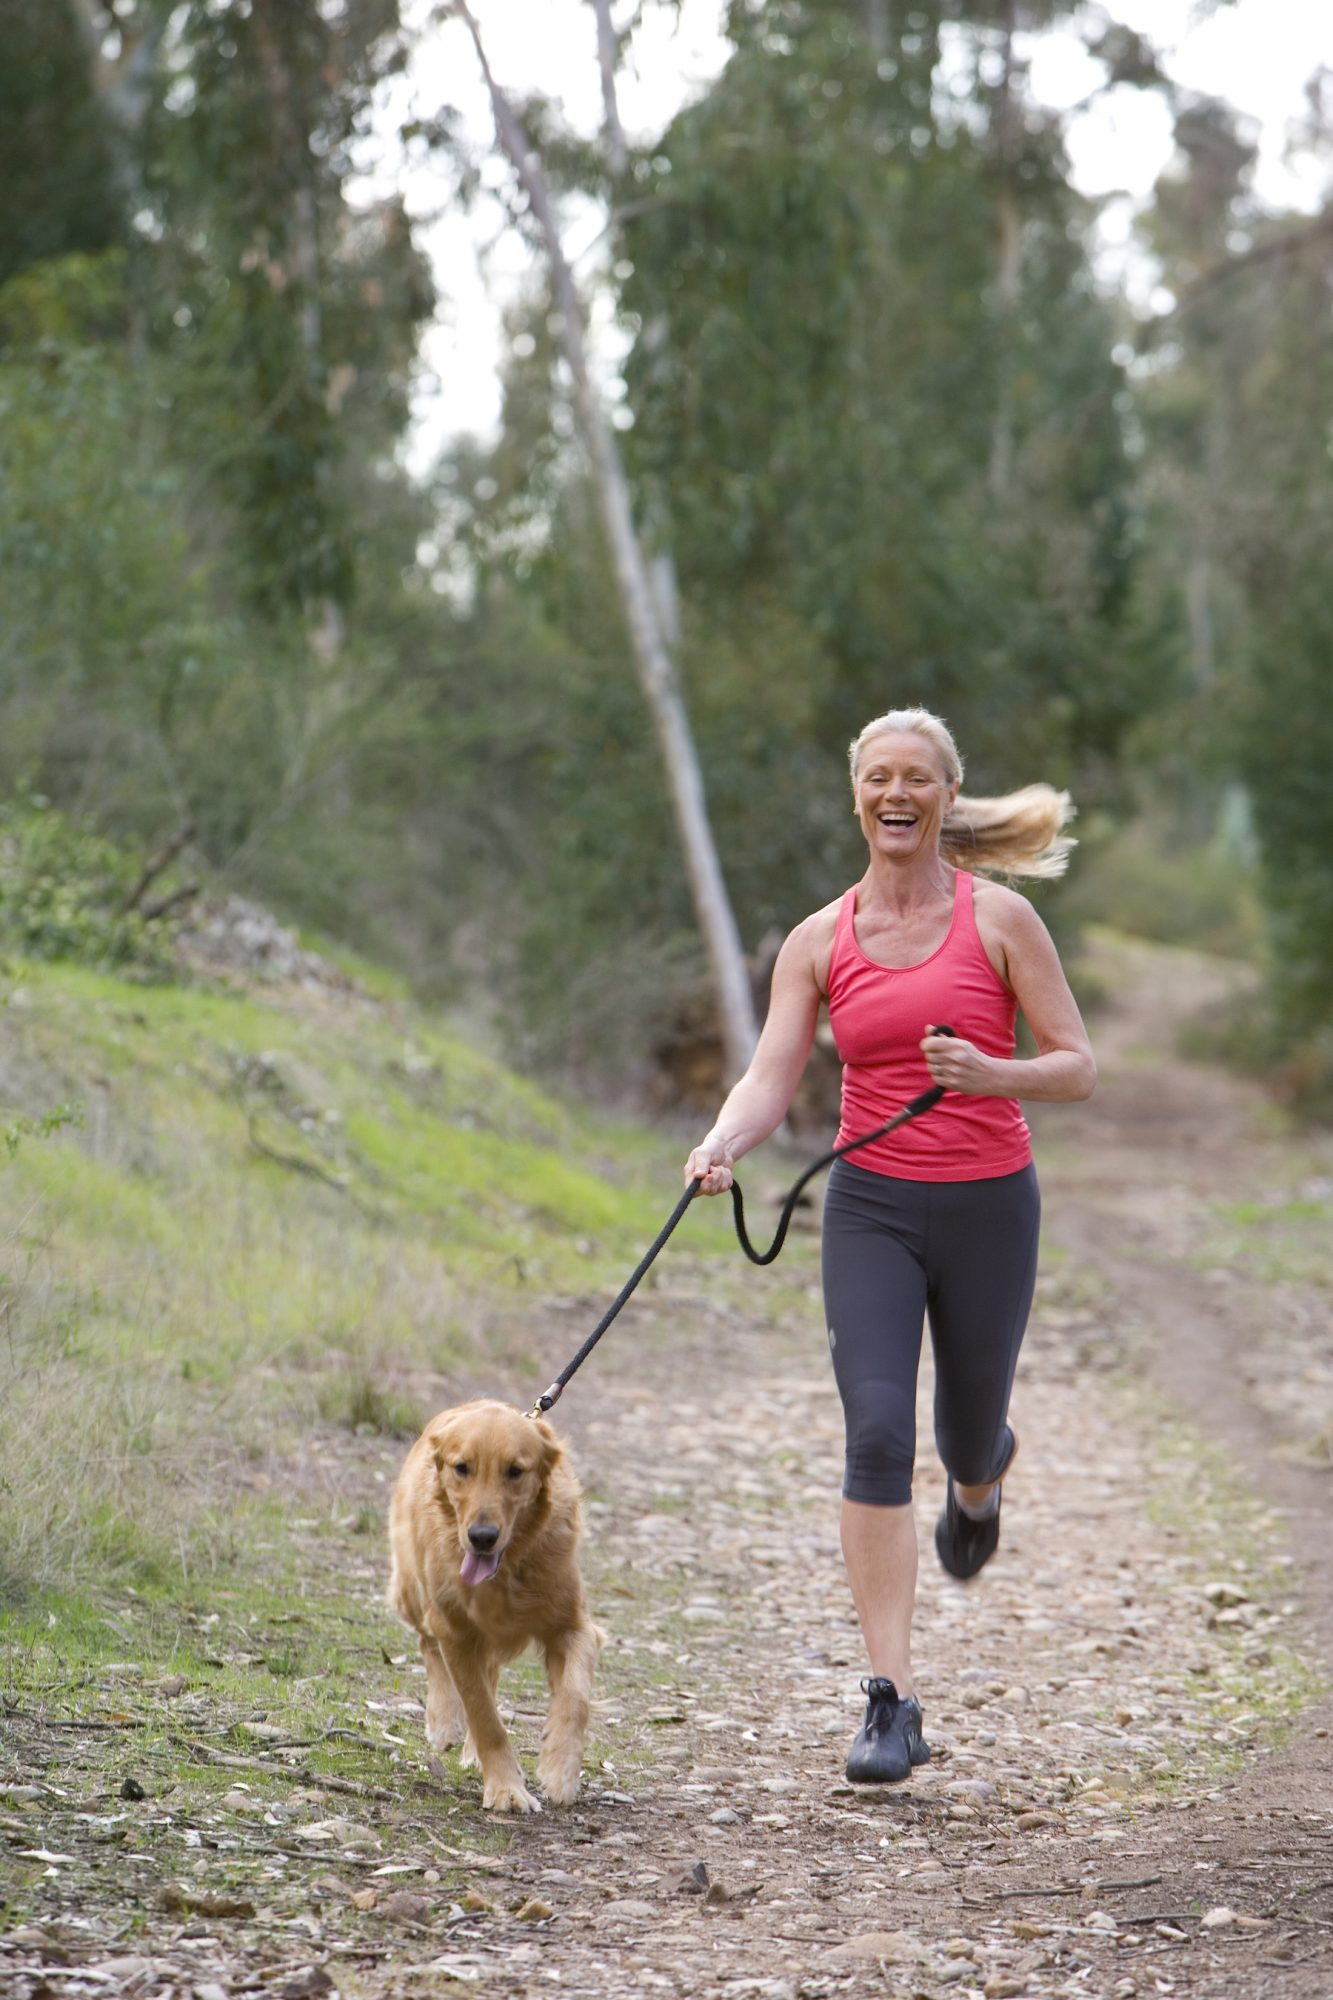 woman jogging with dog laughing outside